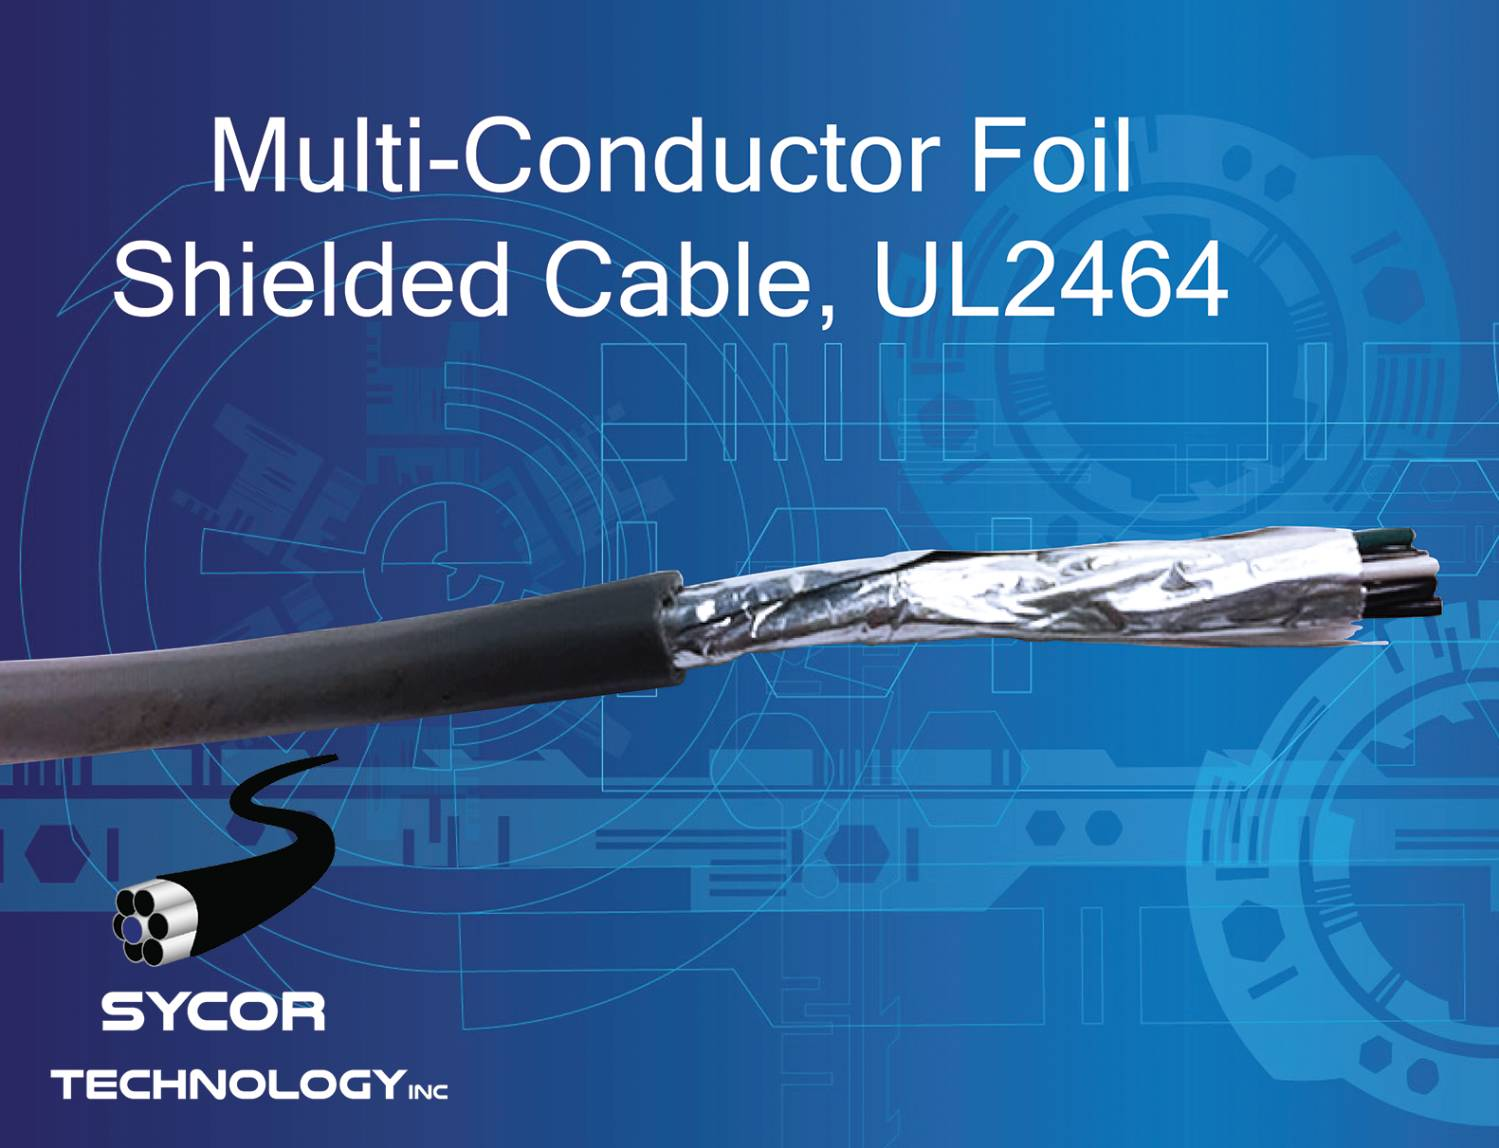 Multi Conductor Cable Foil Shielded, UL2464